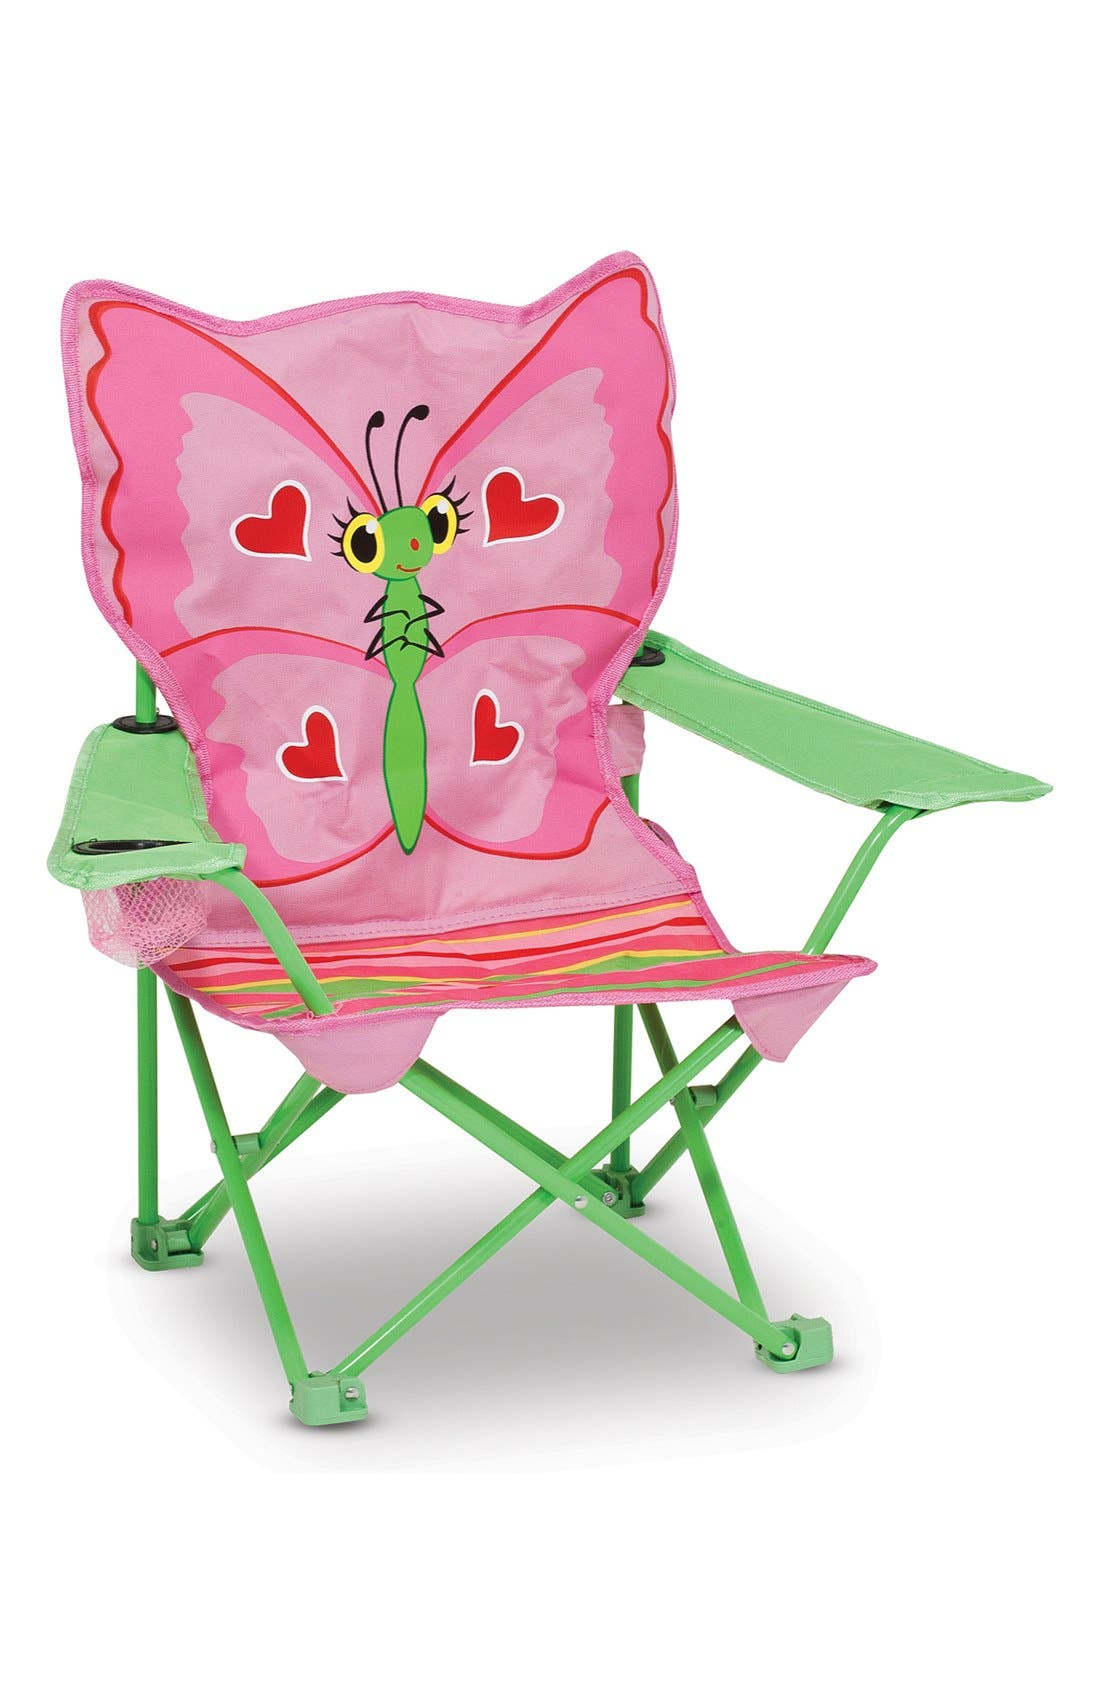 'Bella Butterfly' Folding Chair,                             Main thumbnail 1, color,                             650